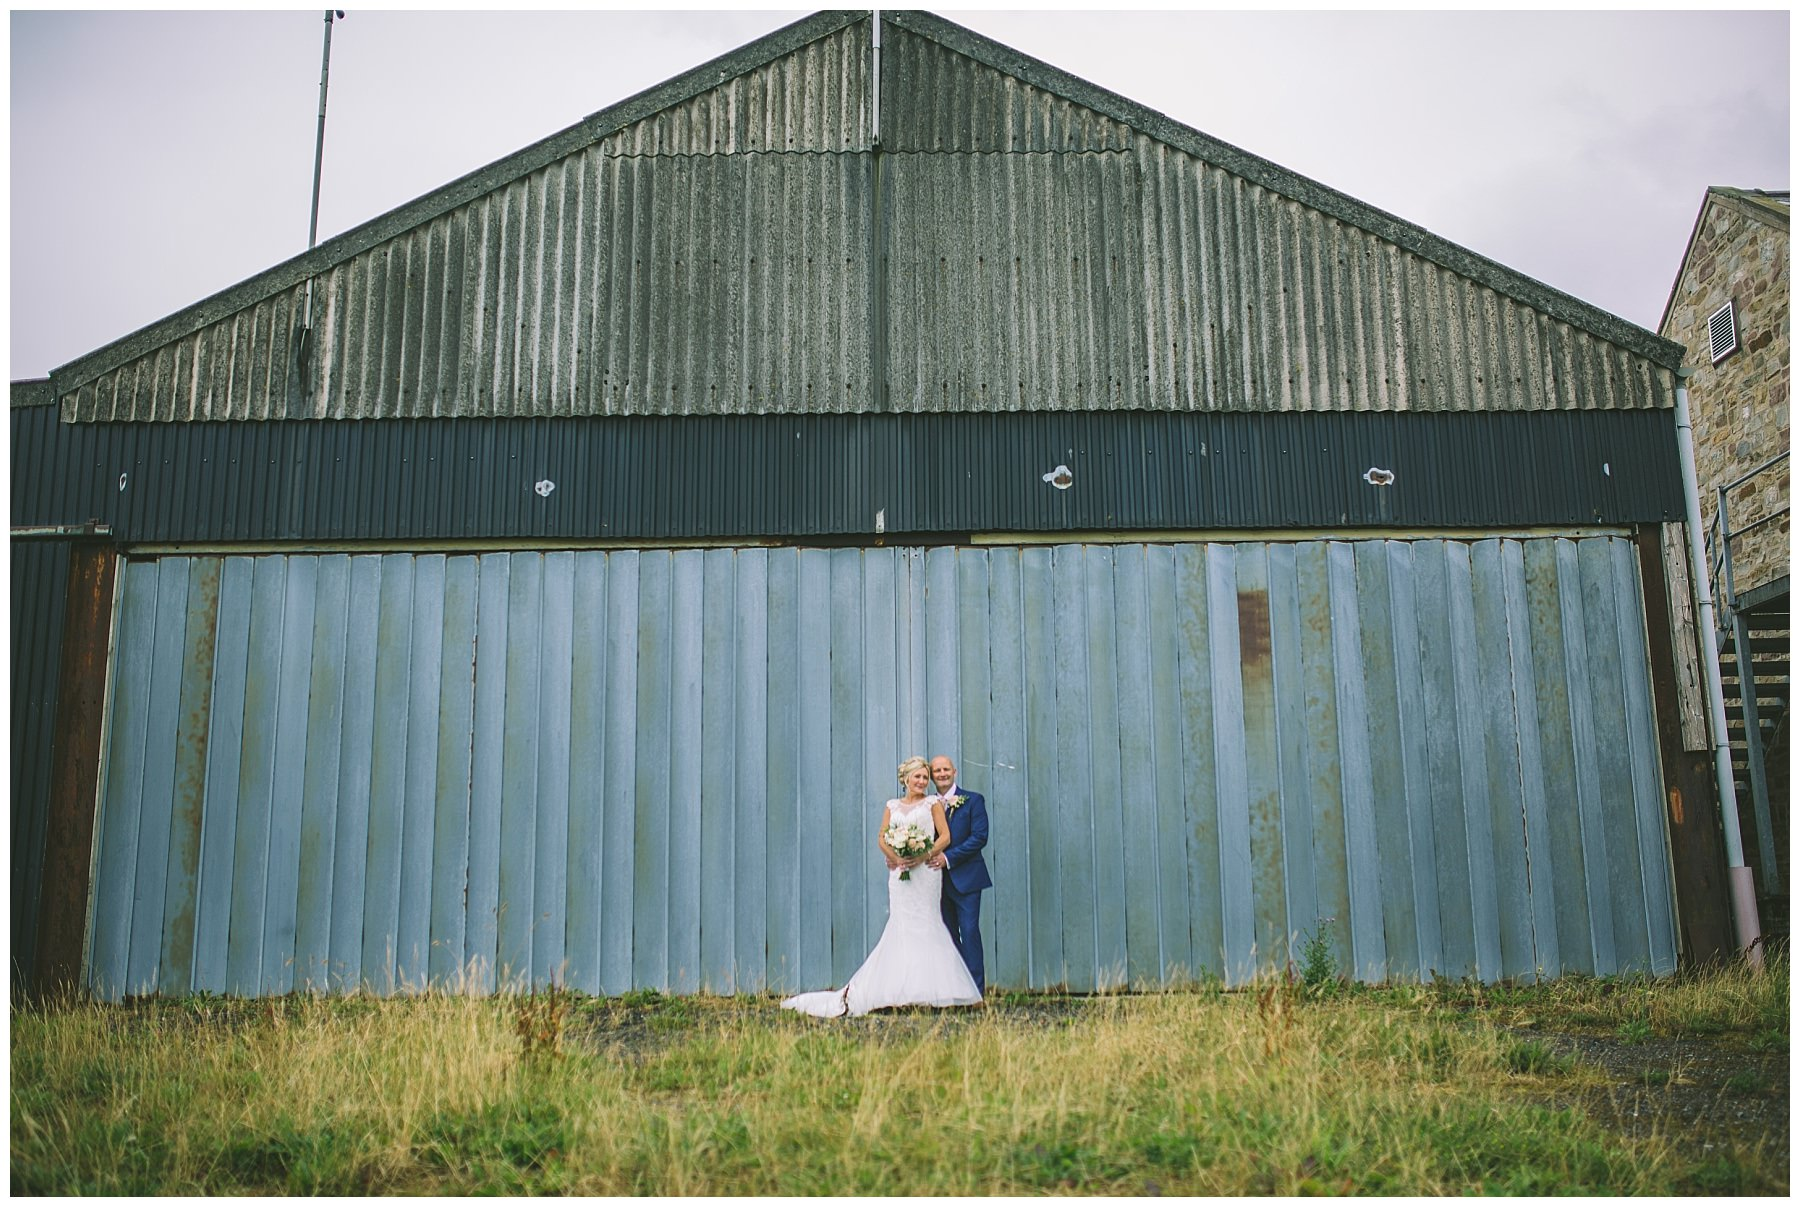 bride and groom stand in front of the iconic hanger at beeston manor